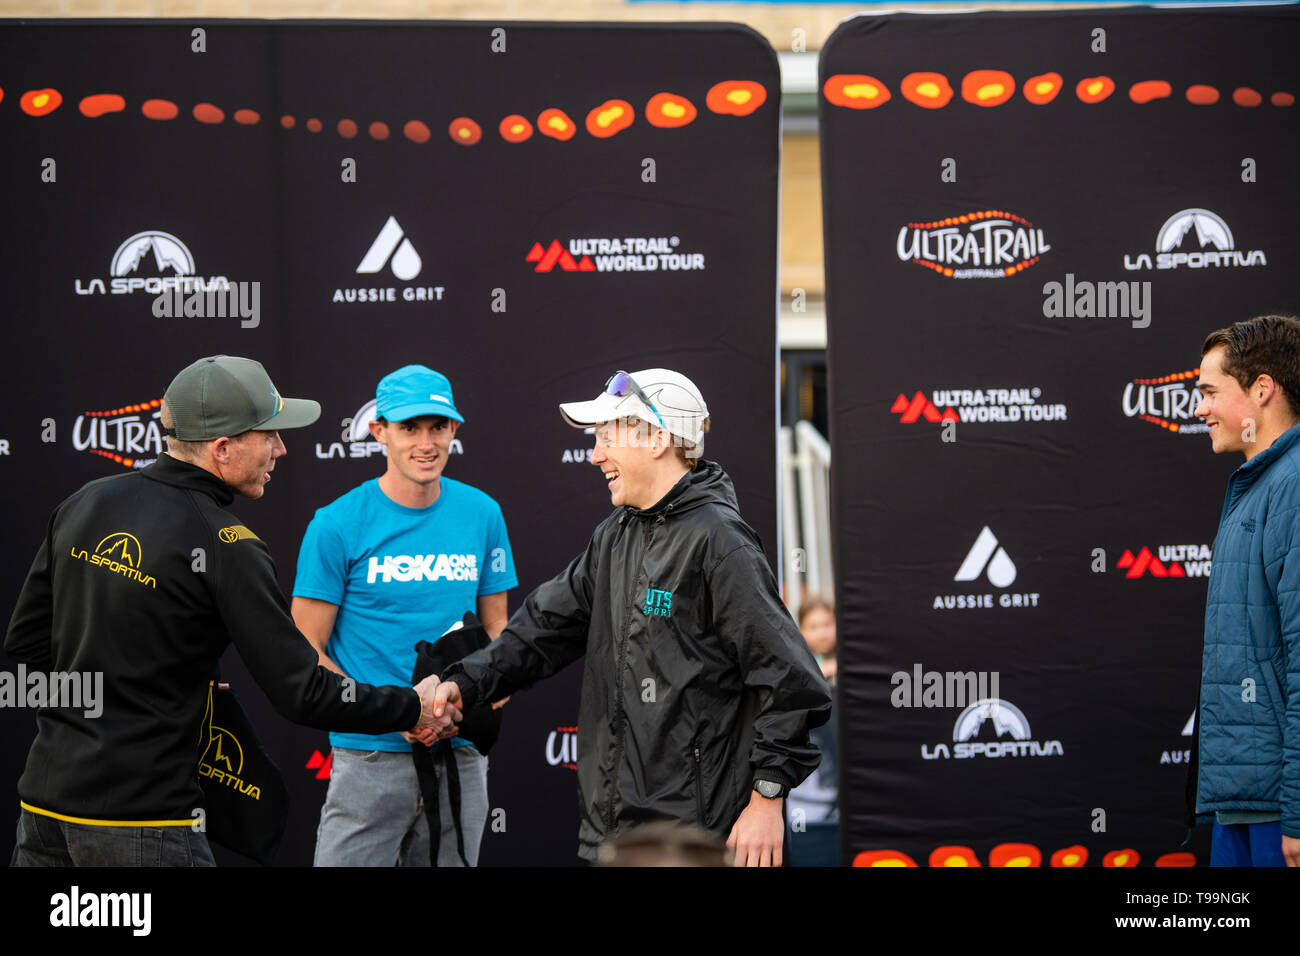 Blue Mountains, Australia - April 16 2019: Ultra-Trail Australia UTA11 race. Over all runner up Will Atkinson shakes hand and receives his prize. - Stock Image